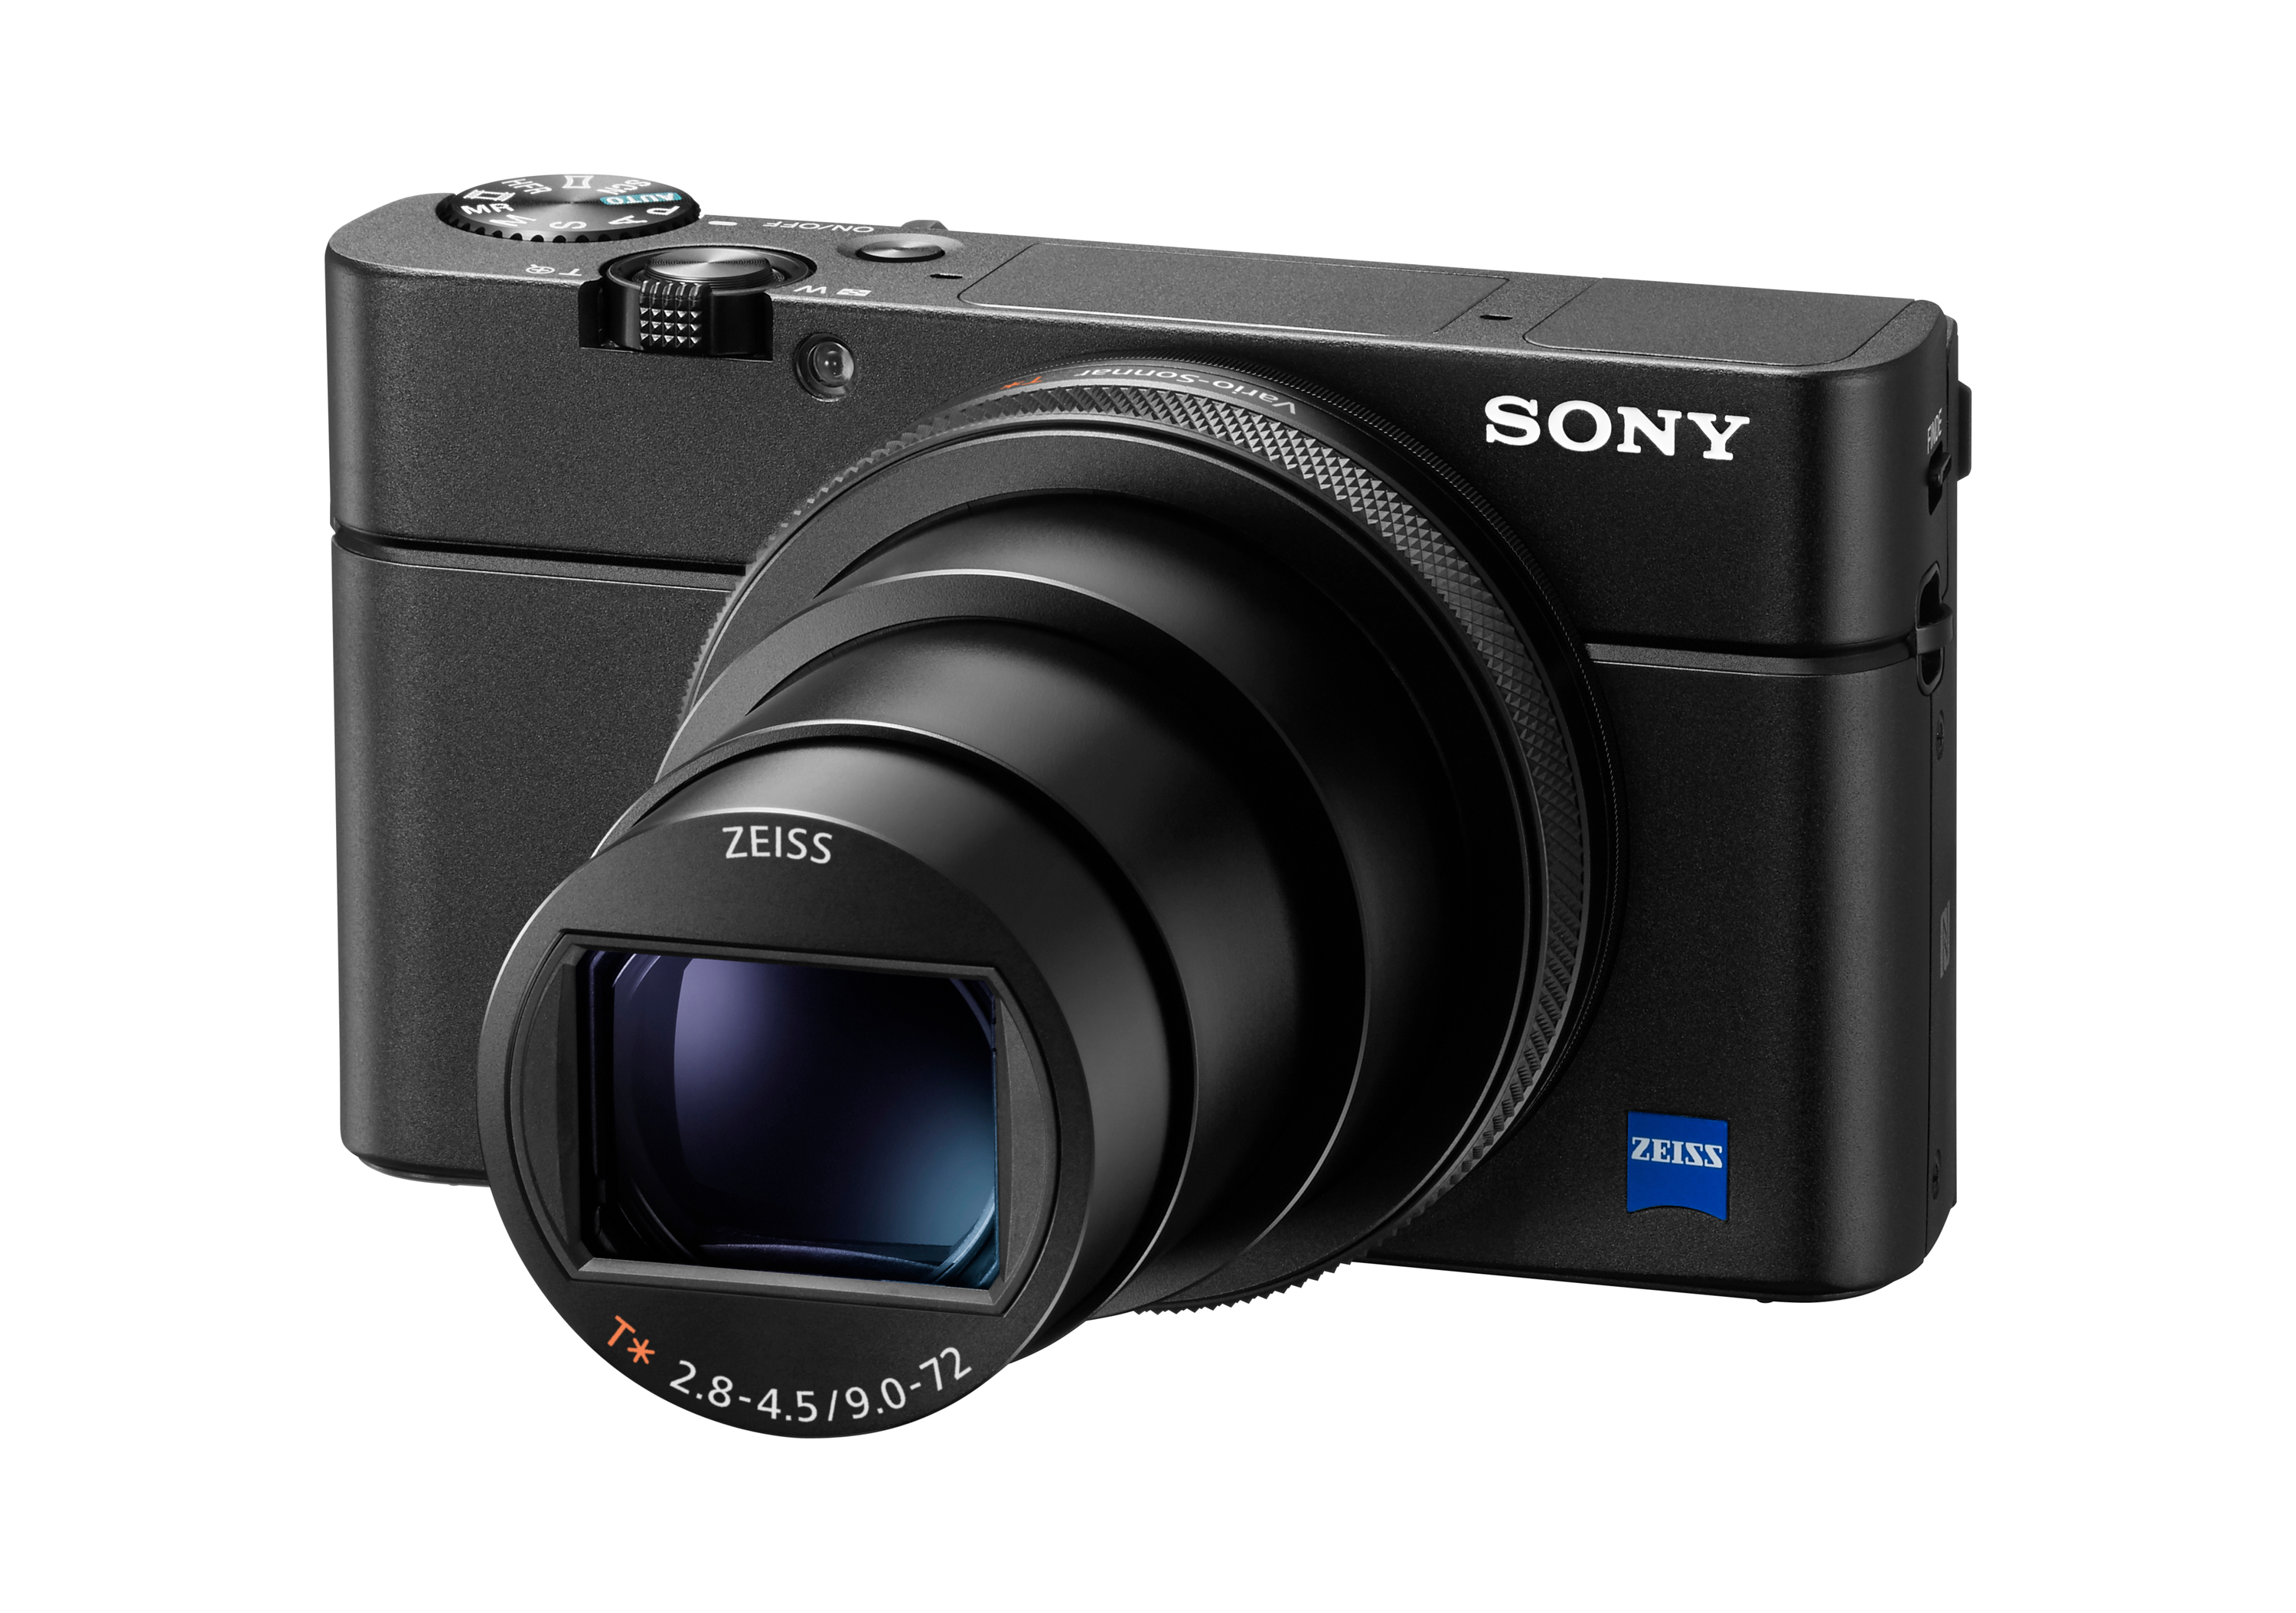 Sony's New RX100 VI Combines Versatile 24-200mm Large Aperture, High Magnification Zoom Lens with World's Fastest AF Speed